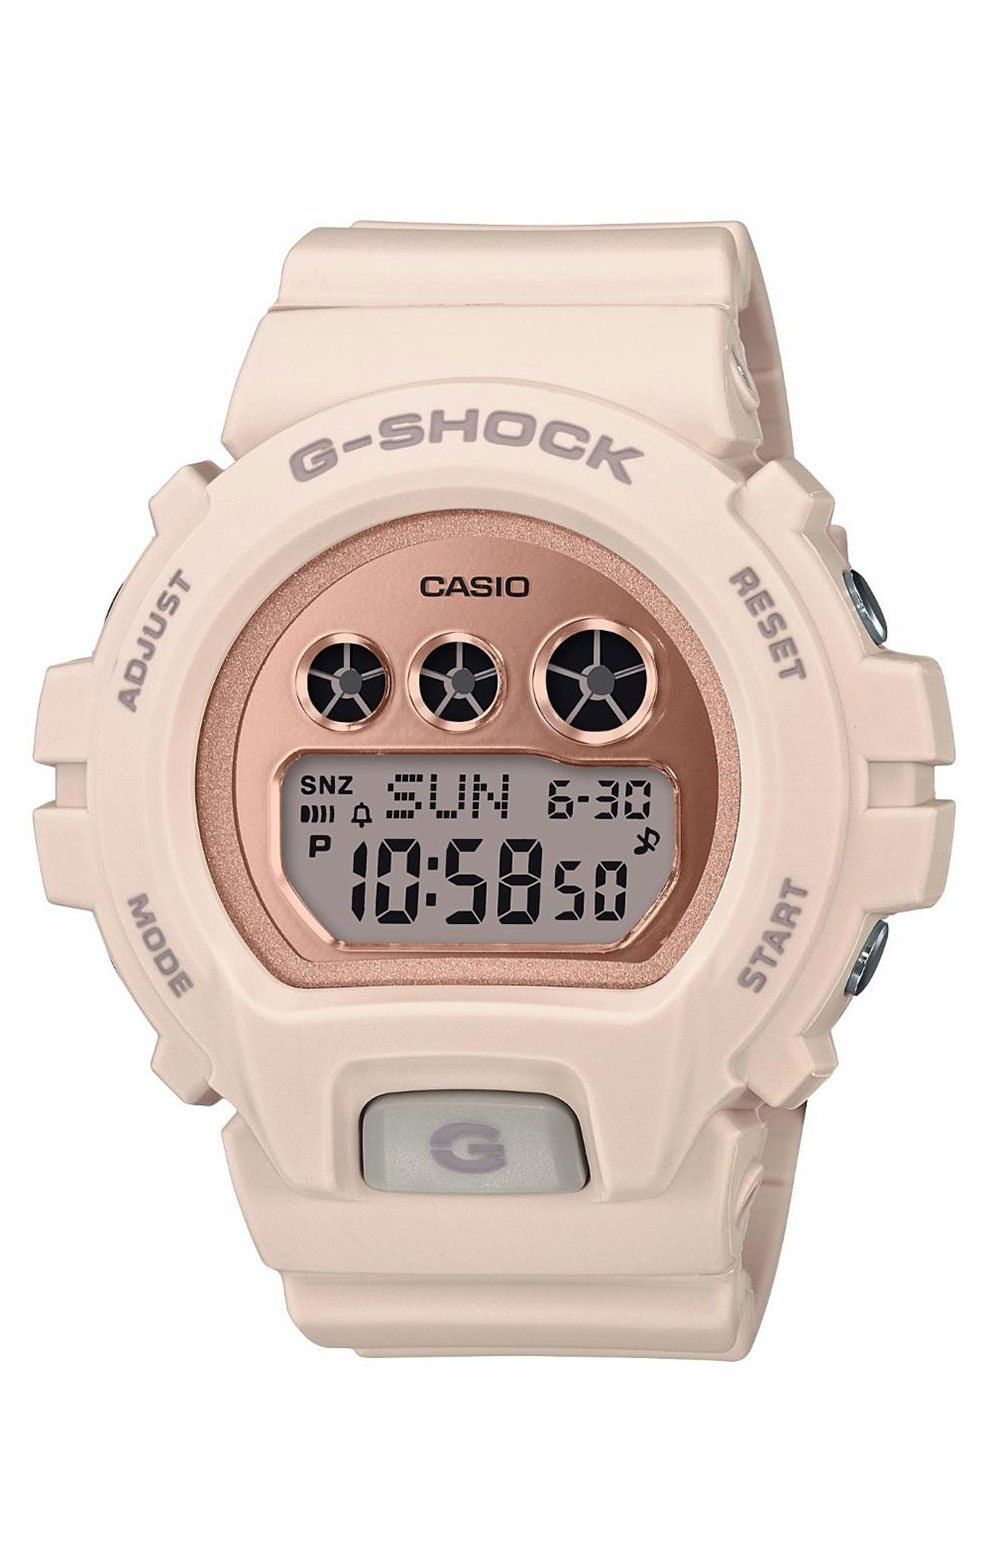 GMDS6900MC-4 Watch - Pink